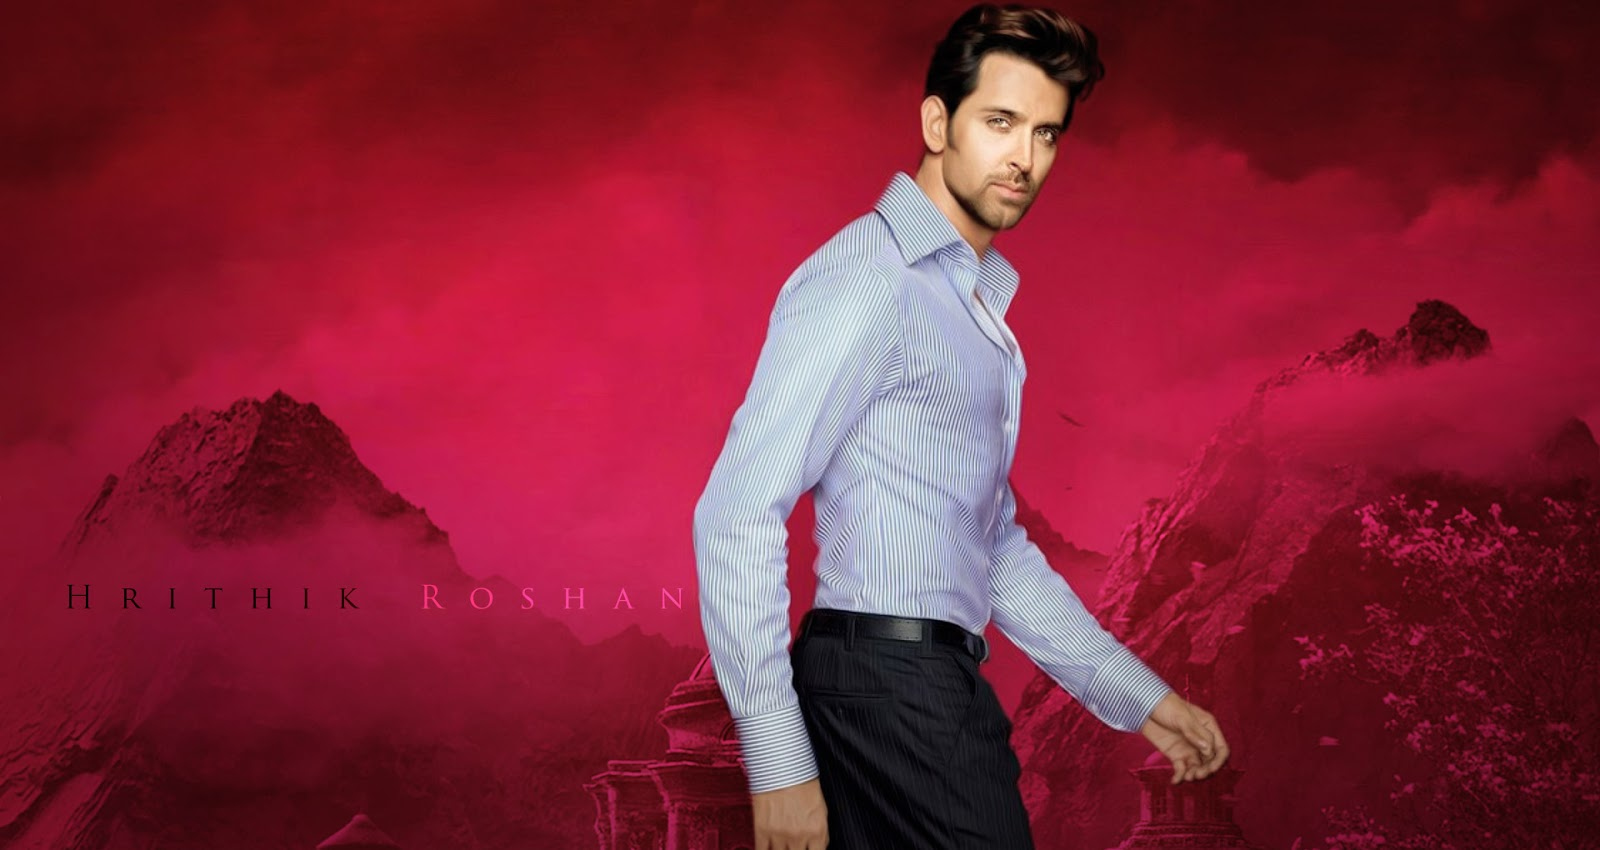 Hrithik Roshan Top Best Walls And Images ~ wallpaper